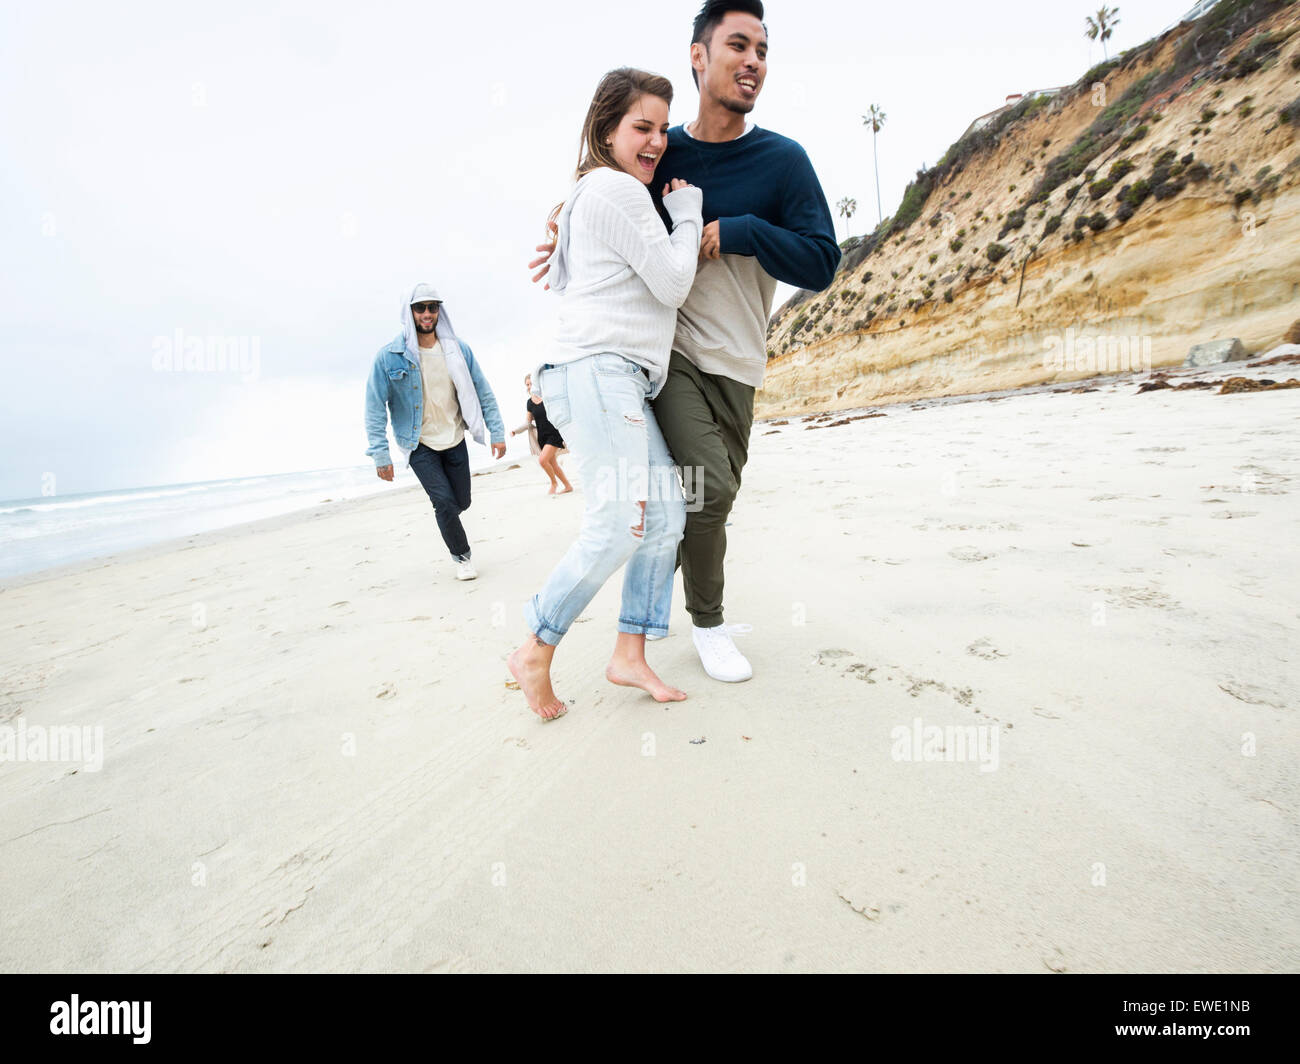 A group of young men and women running on a beach, having fun - Stock Image